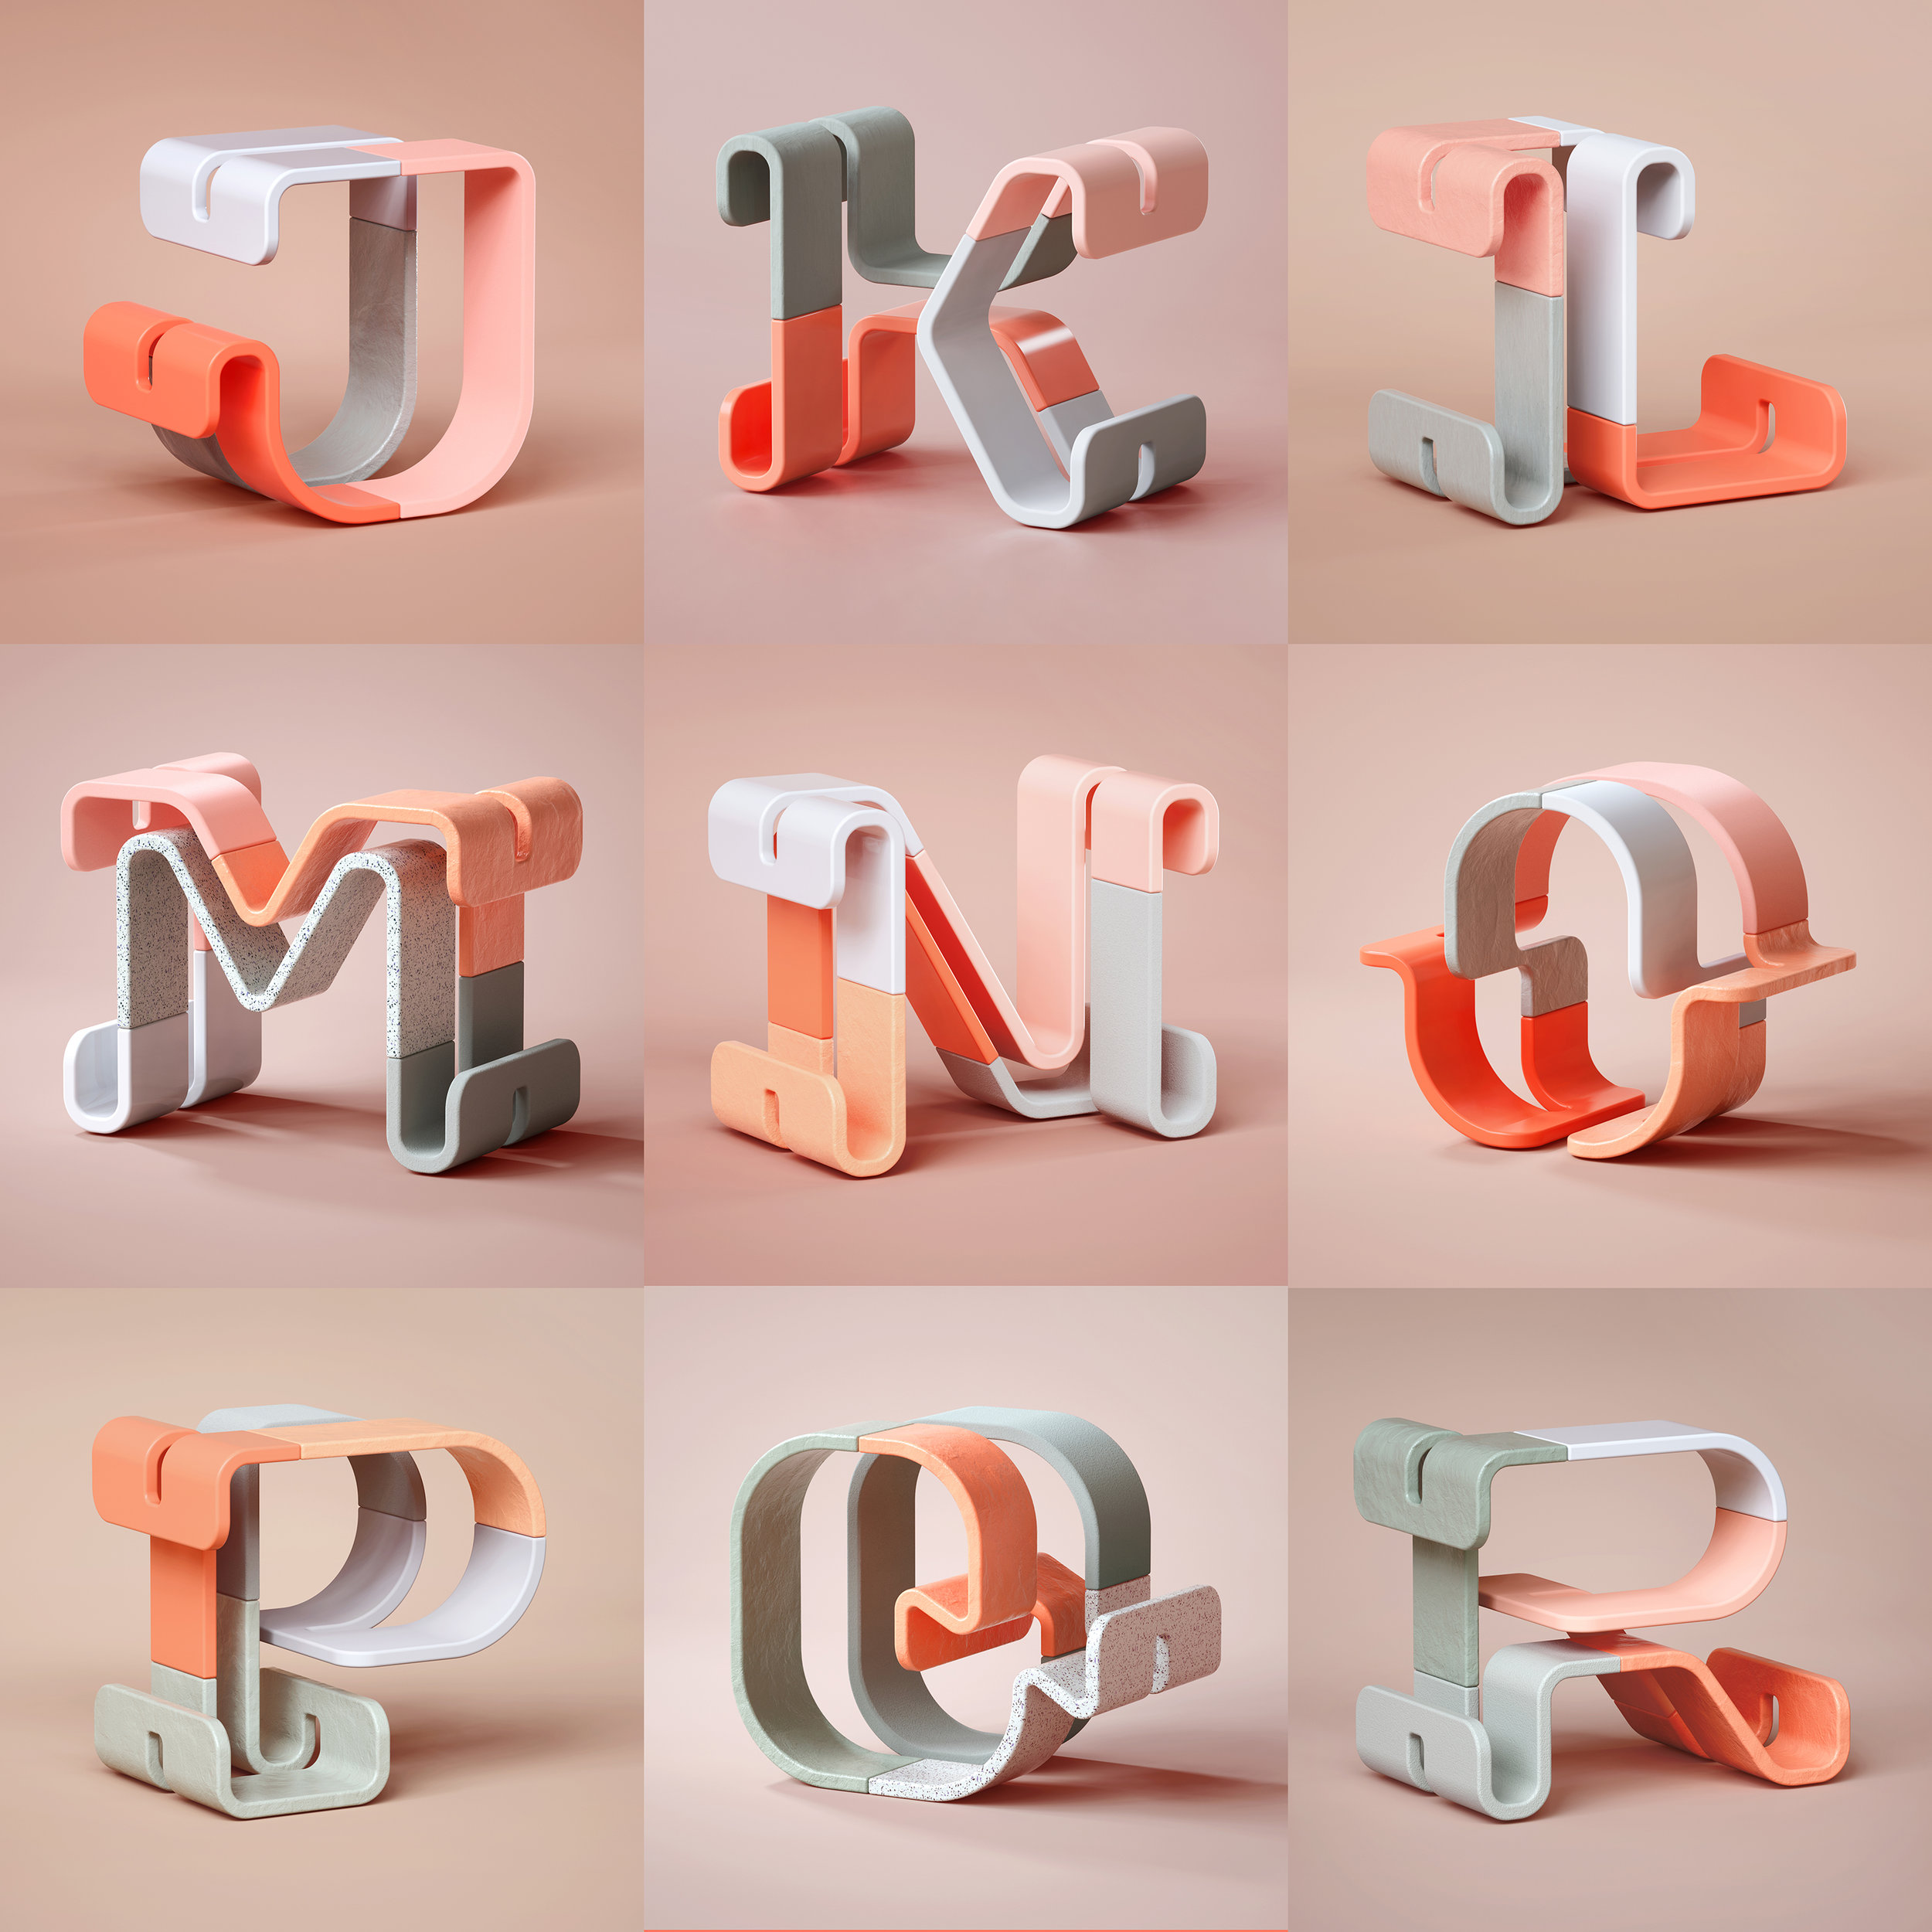 36 Days of Type 2019 - 3D Typeform letter J to R visuals by Singapore based brand strategy and creative design consultancy, BÜRO UFHO.